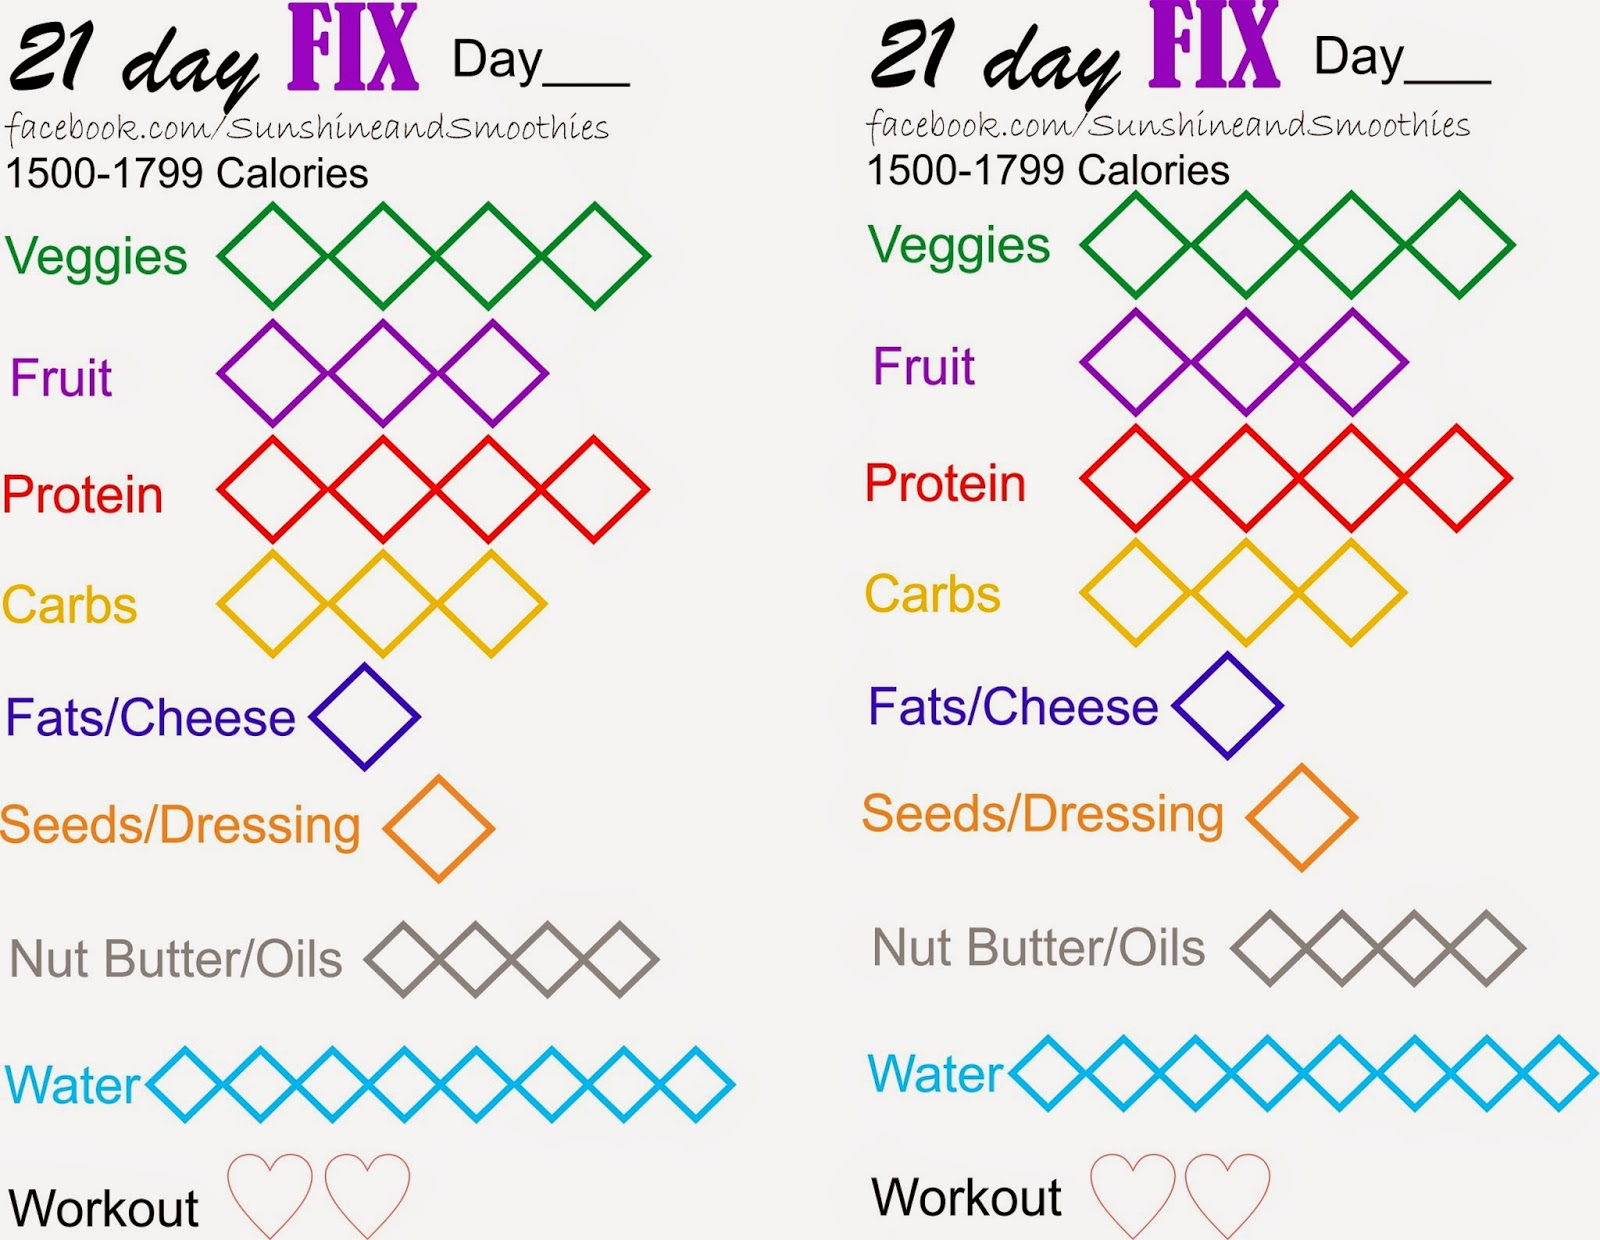 Sunshine And Smoothies Fitness 21 Day Fix Tally Sheets